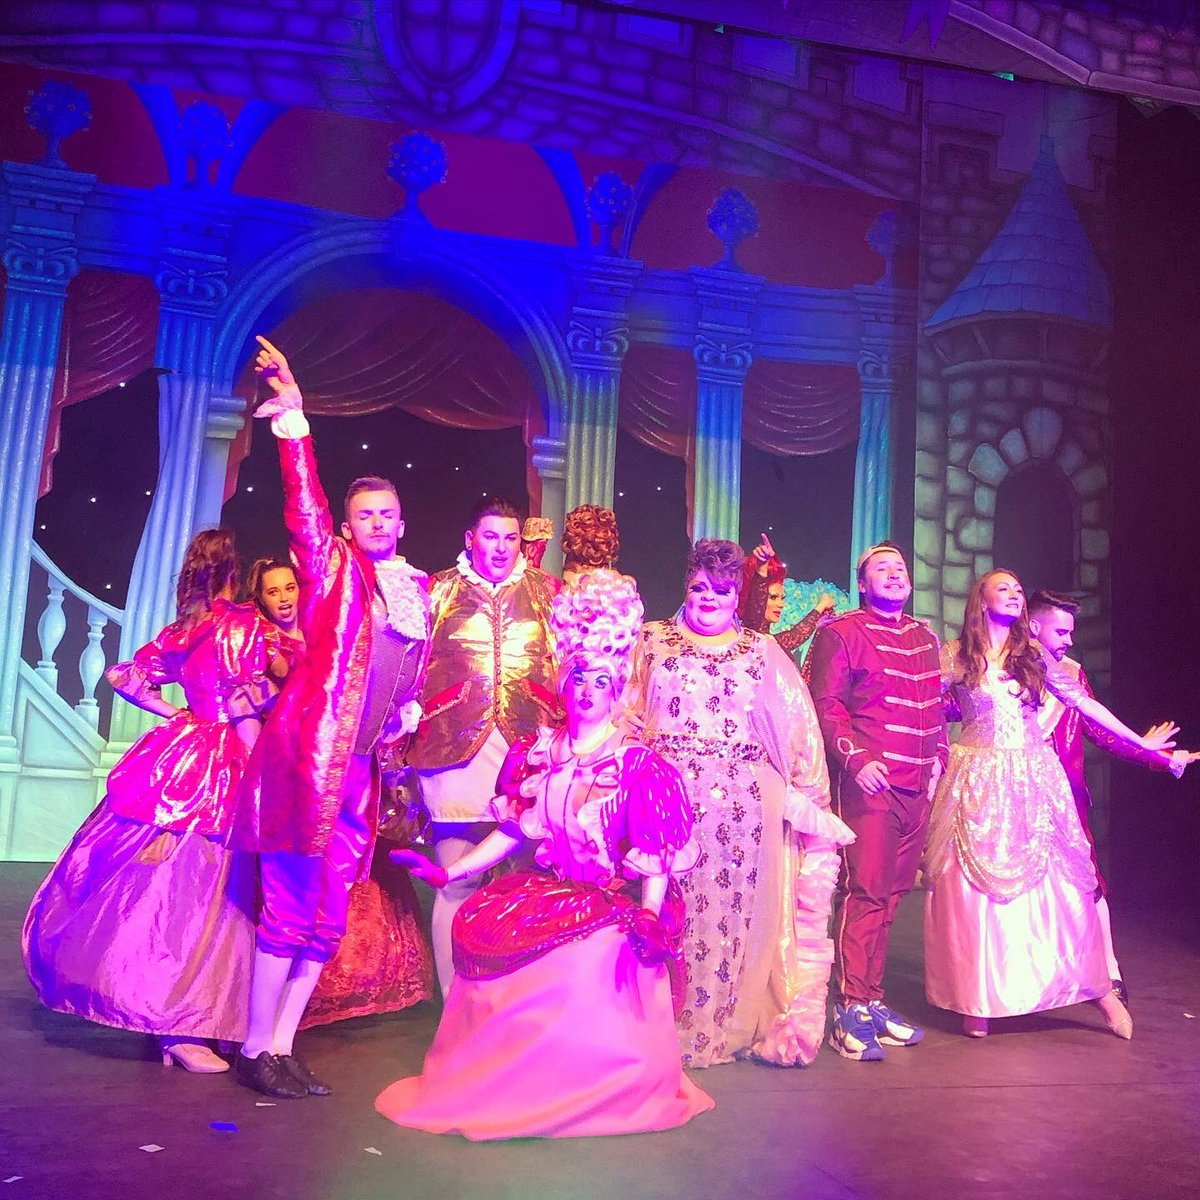 Went to @adultpanto_tour #sinderella tonight! I genuinely laughed until I was sore - a fab way to spend a Monday night in January! 😁 An amazing cast! @Divinadecampo @StacyLMatthews @jamieandfifi @DavidWeekender @_iamRobKing @TheDavidJohnHop @TroyHarrisUK @kris_93 @rossmcnally